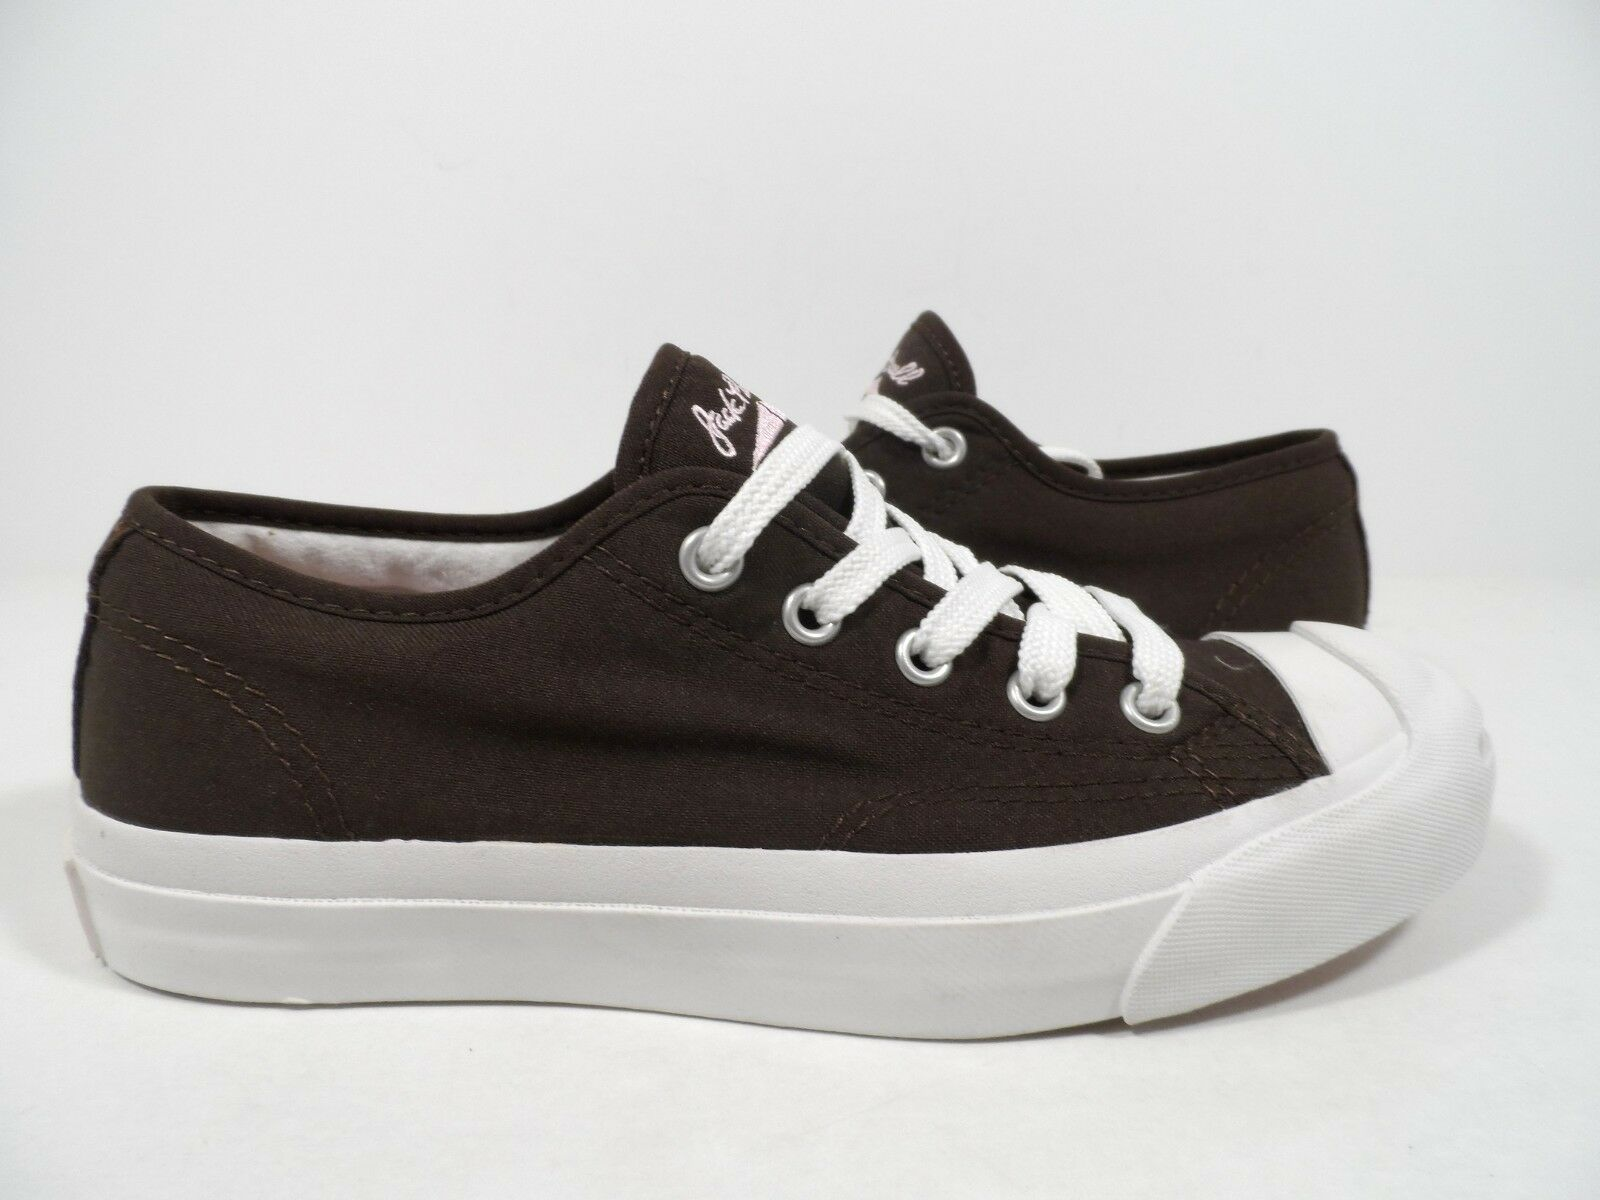 Converse Women's Jack Purcell CP Sneaker Chocolate White Size 5